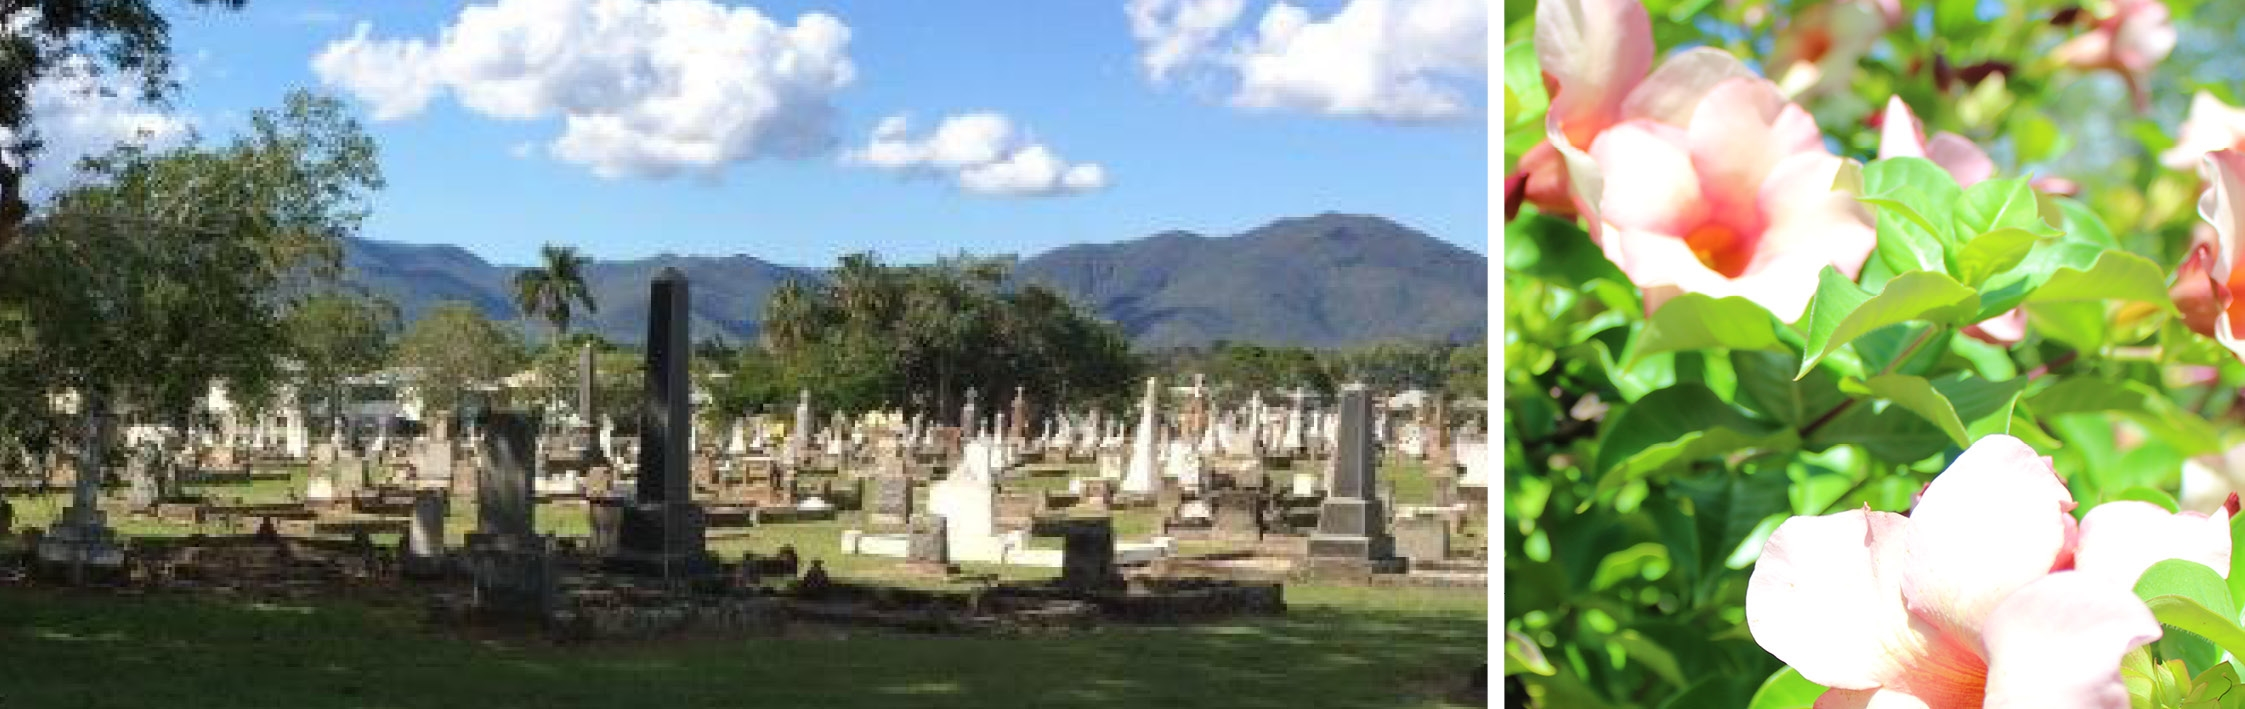 South Rockhampton Cemetery